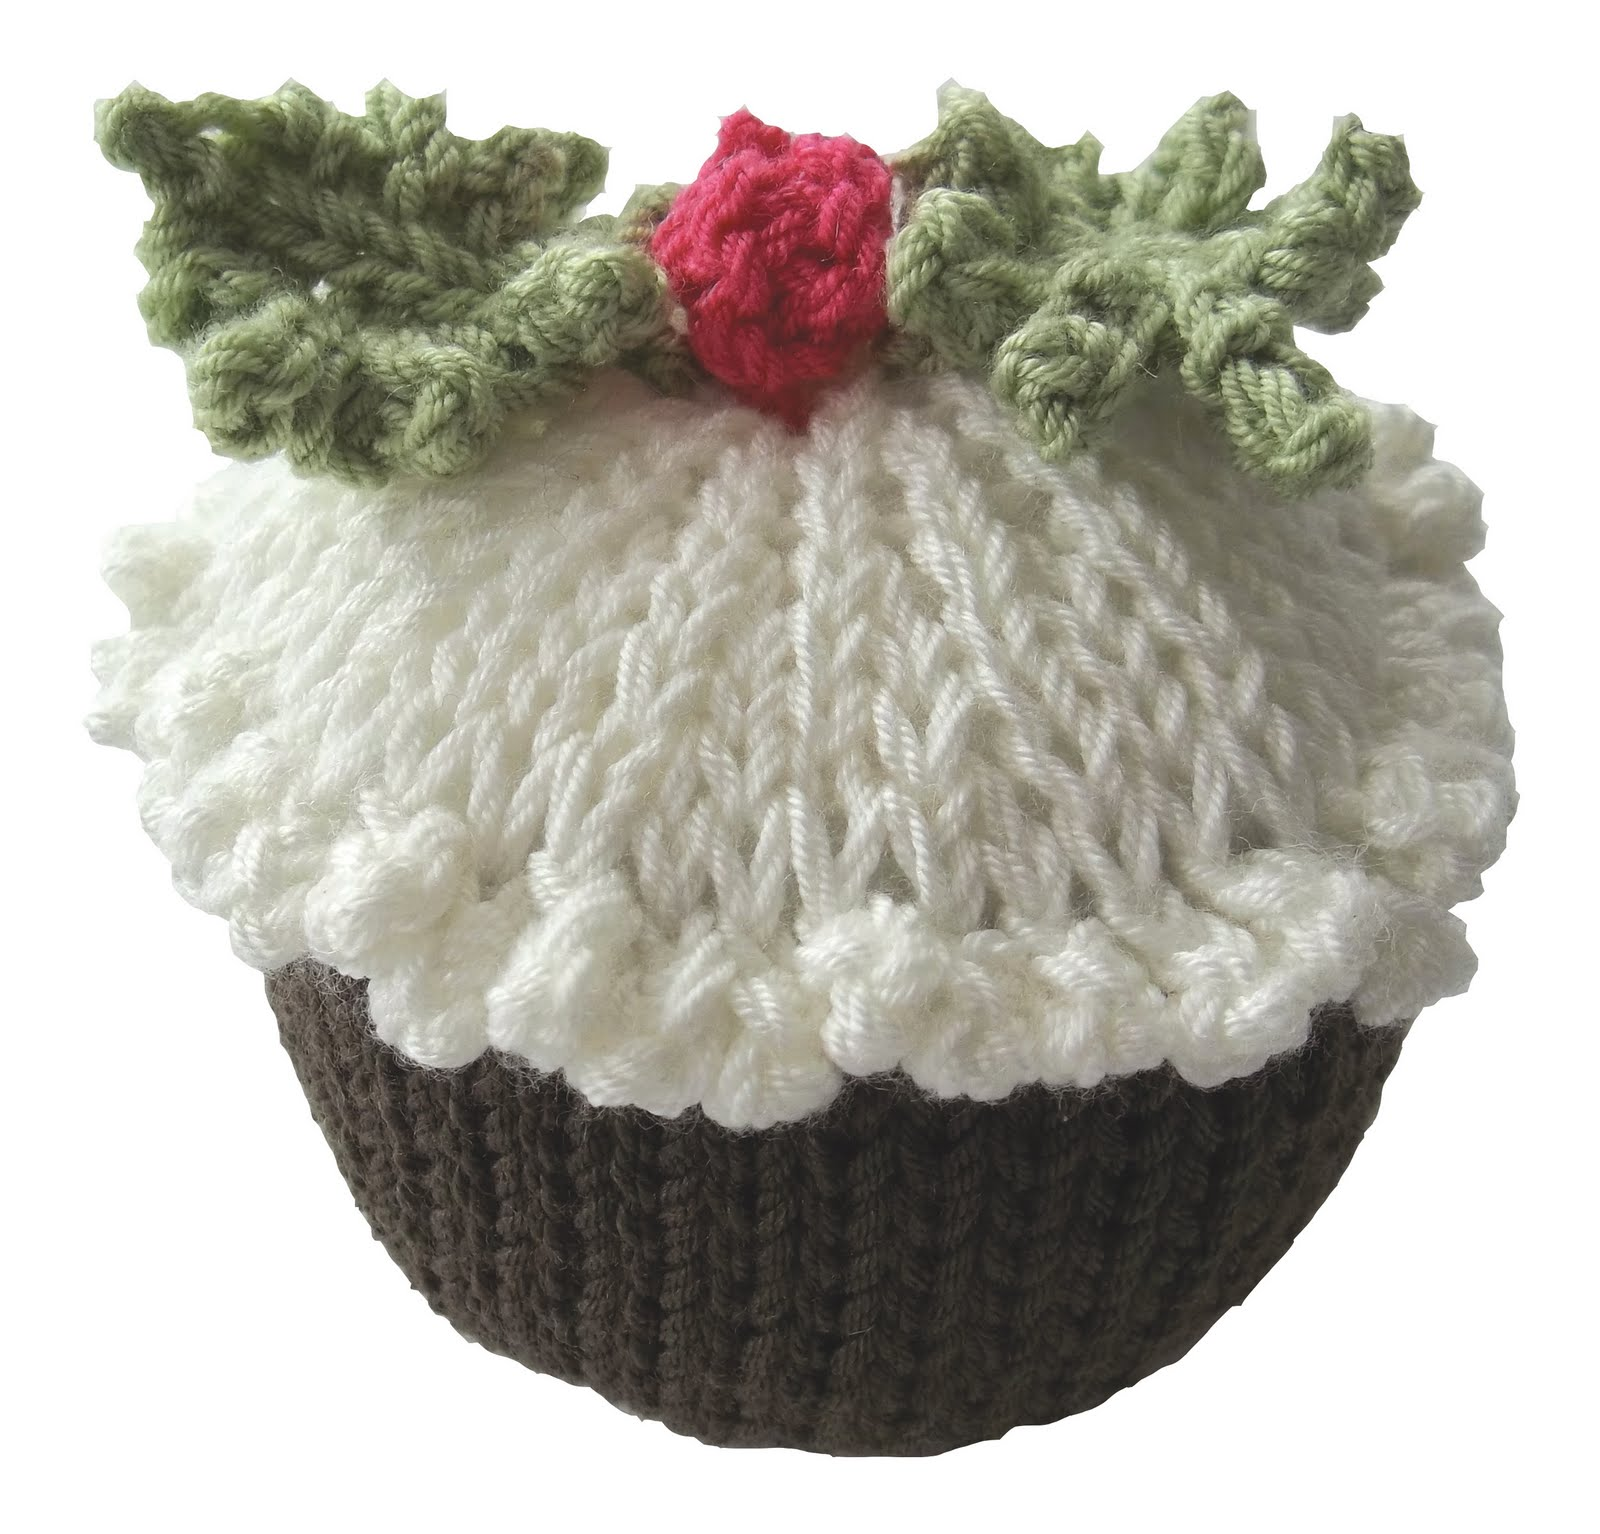 Knitting Pattern For A Christmas Pudding : Christmas Pudding Knitting Workshop and Hand Knitting Patterns